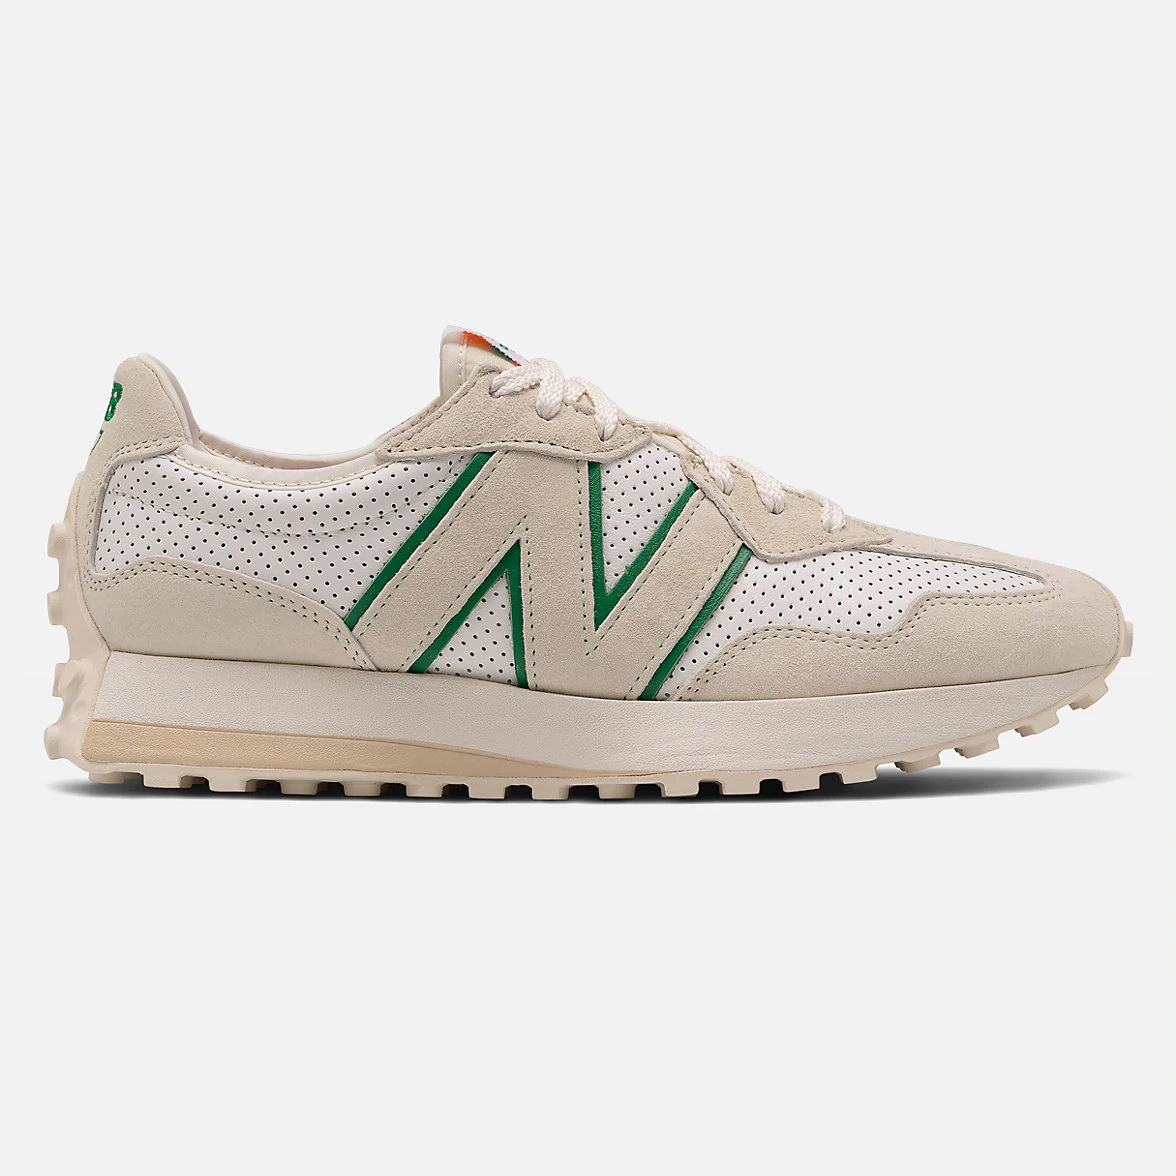 Casablanca x New Balance 327 'Off White/Green'}